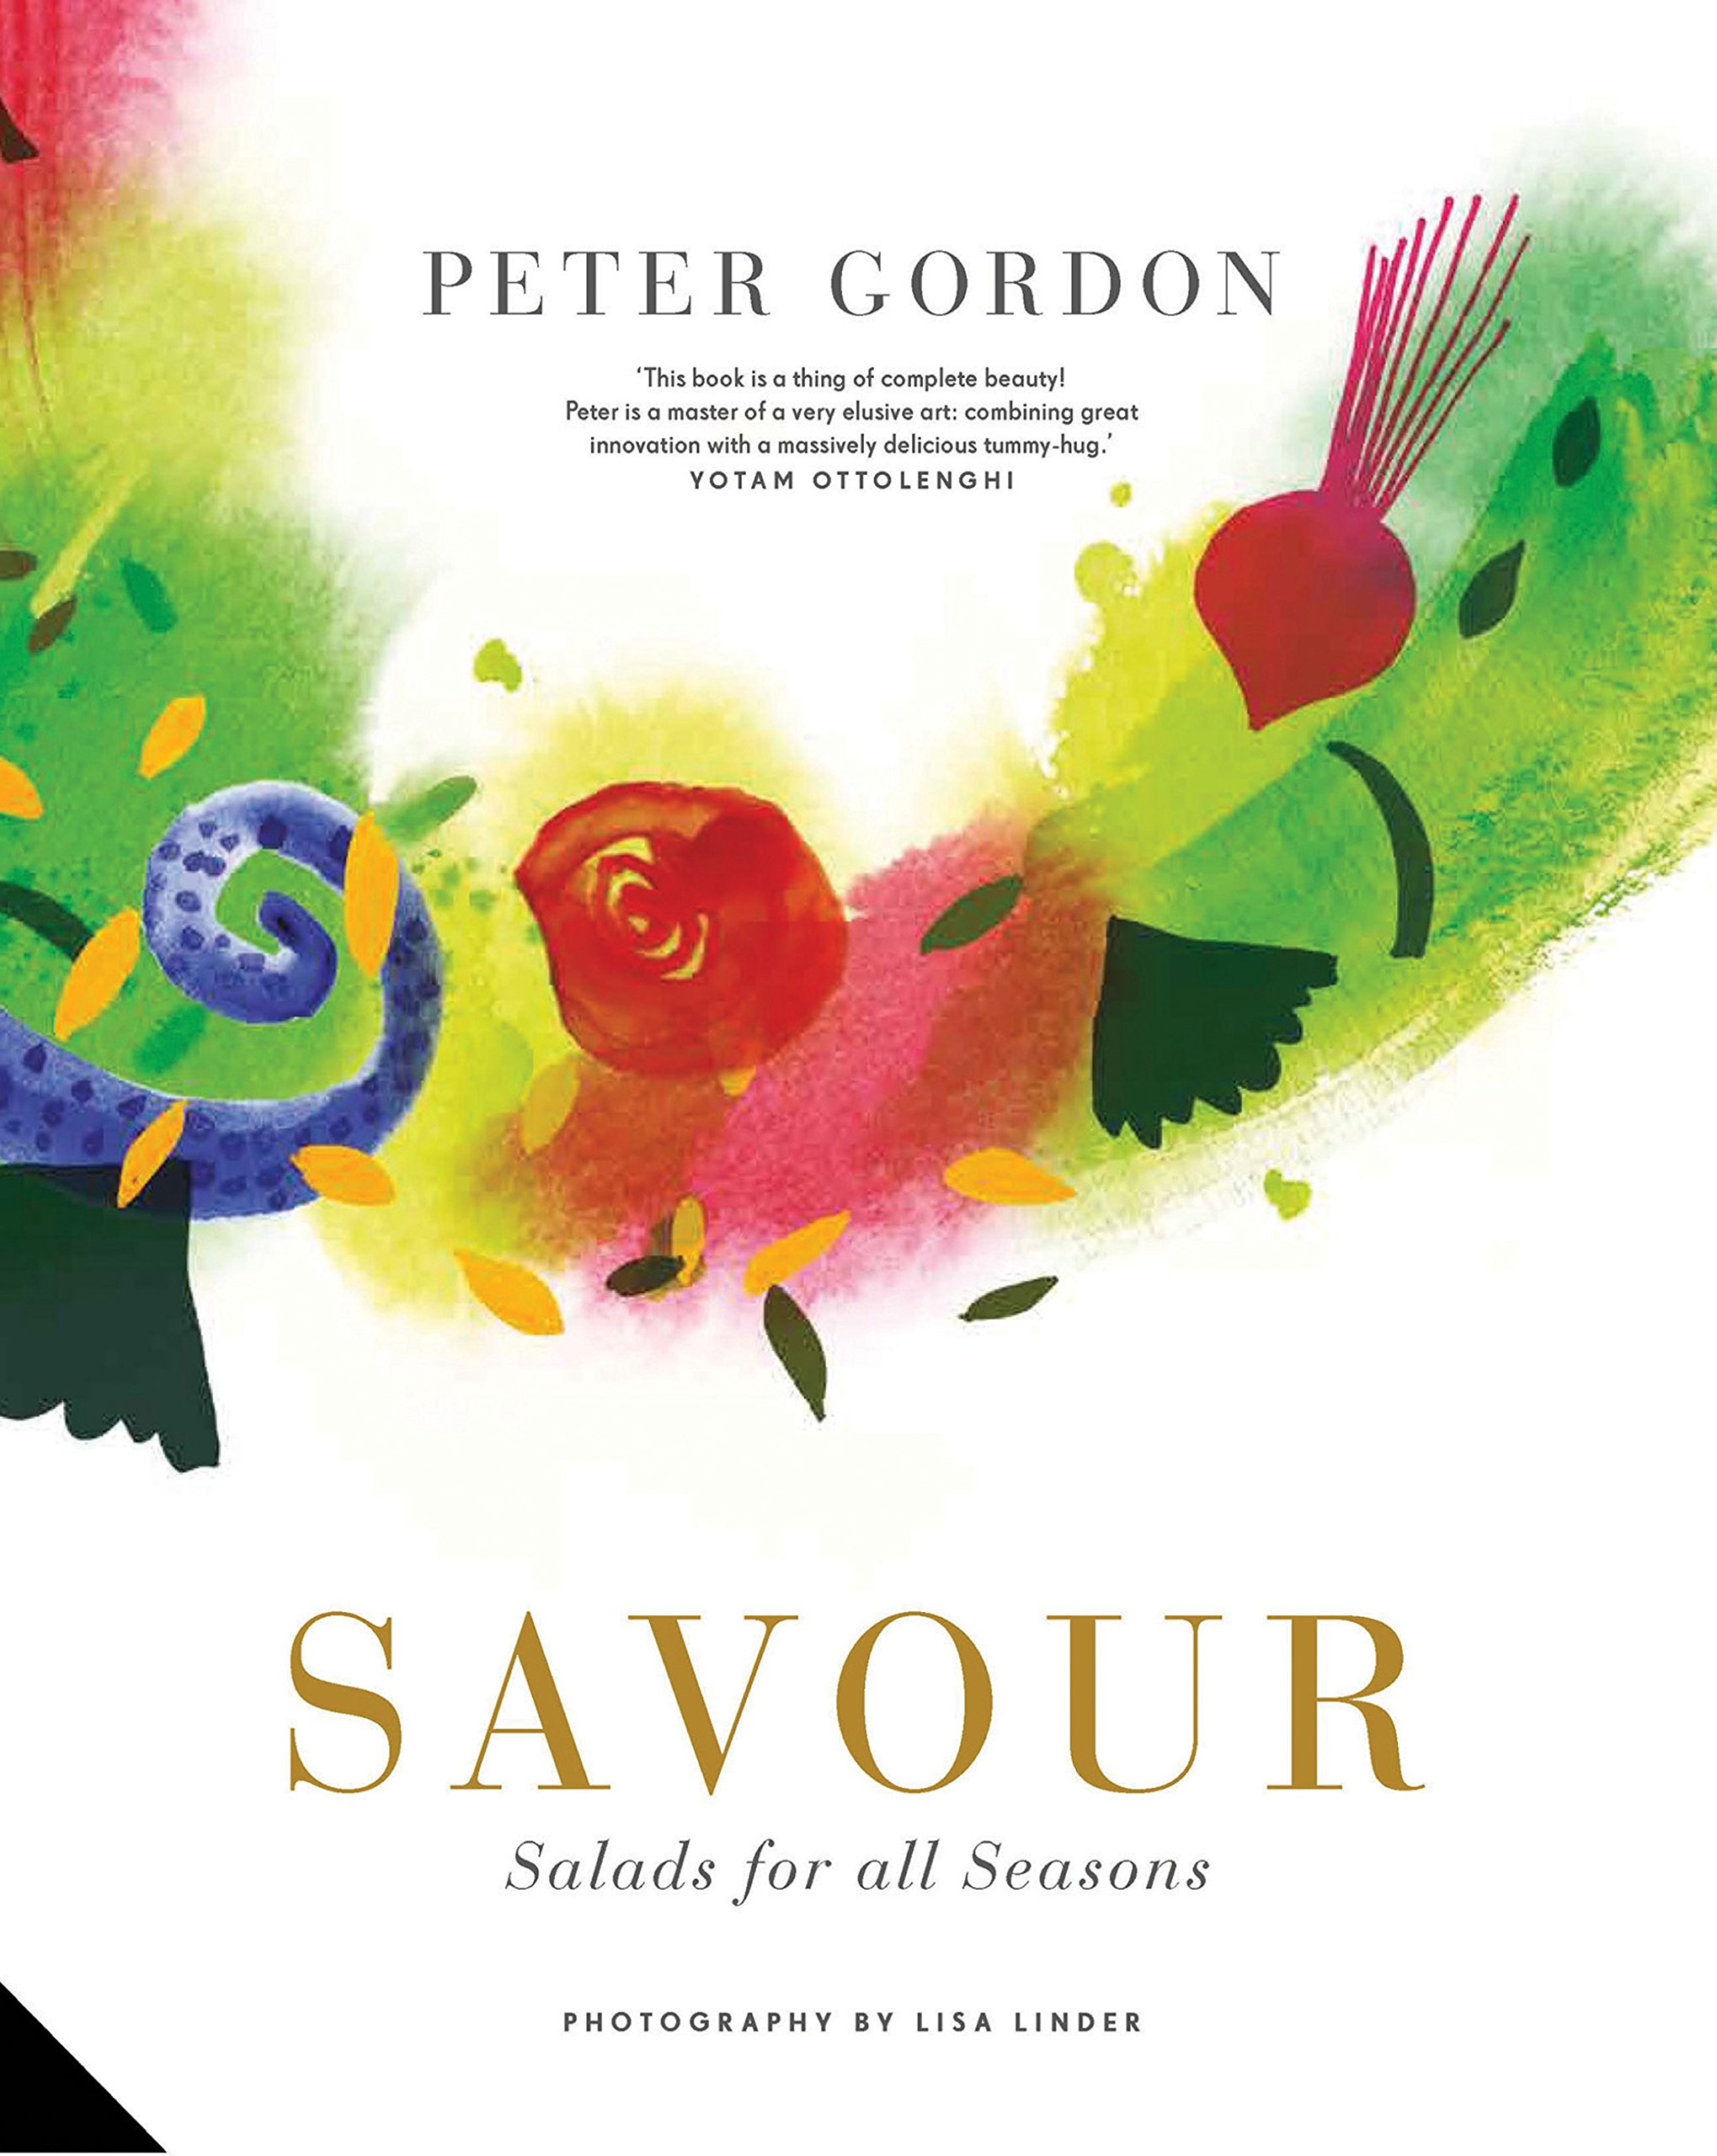 Savour salads for all seasons peter gordon 9781910254493 savour salads for all seasons peter gordon 9781910254493 amazon books fandeluxe Gallery